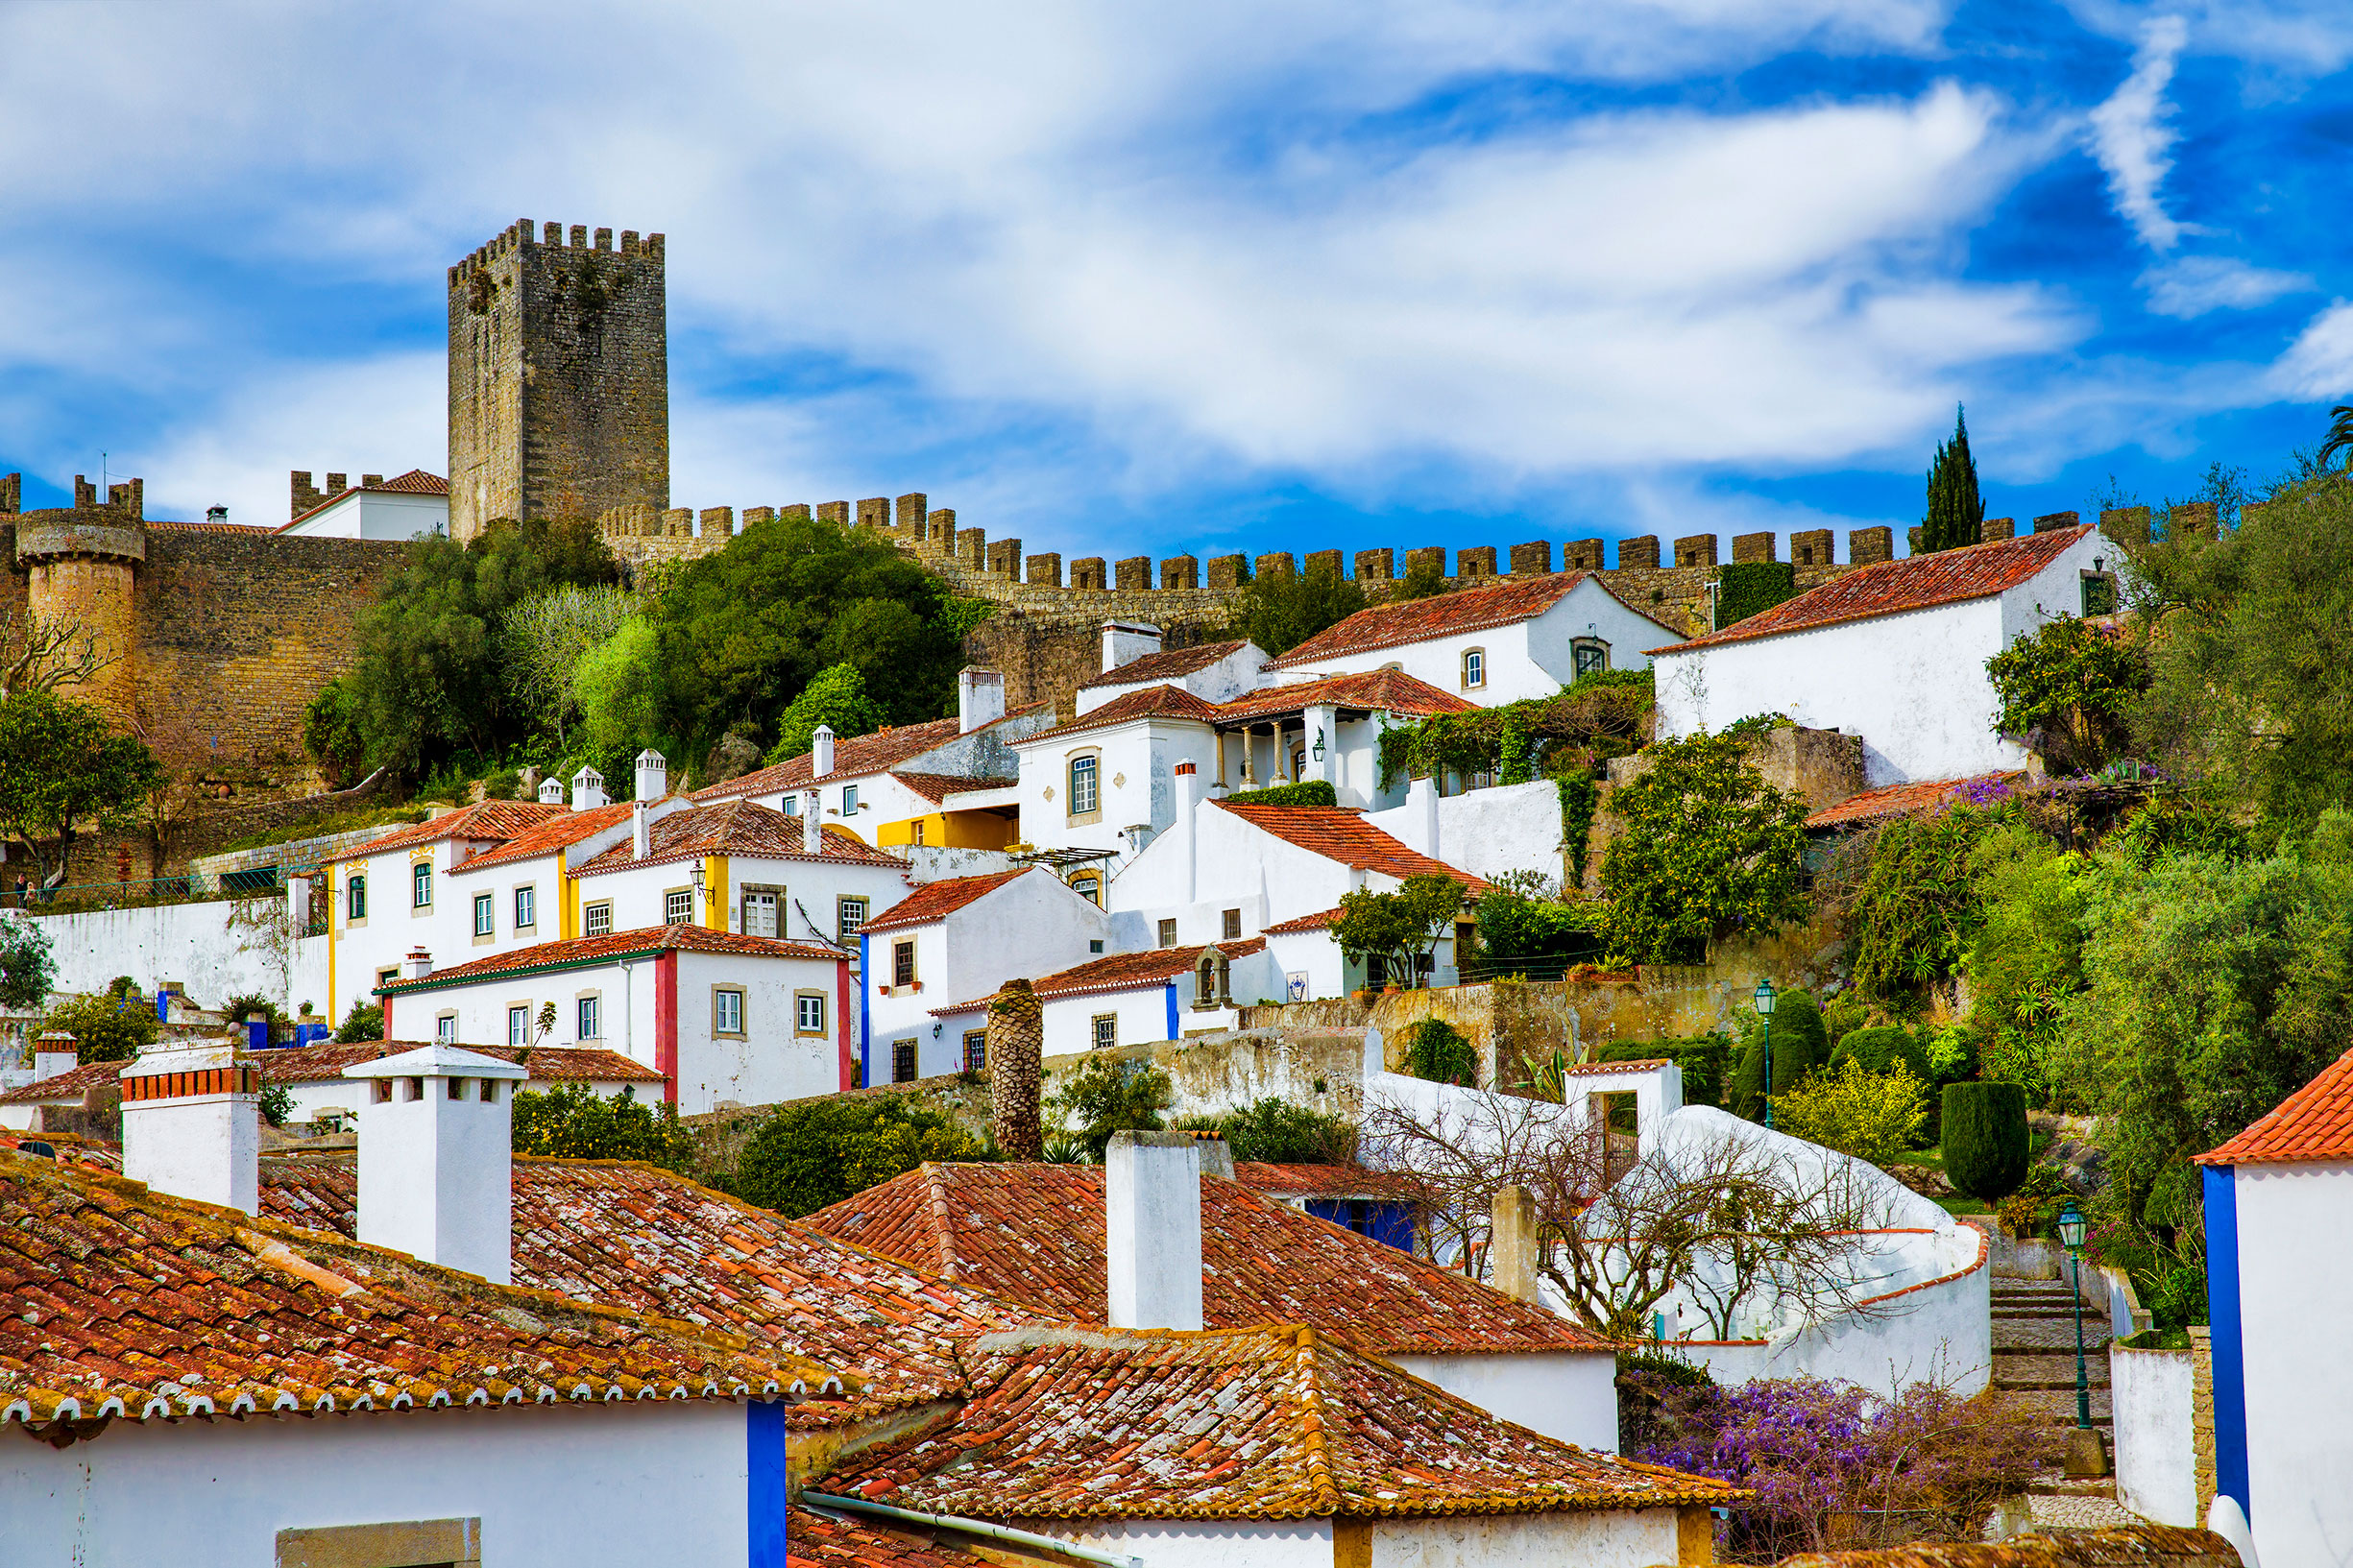 8 Charming Places To Visit In Portugal In 2018. Holiday Destinations. Where To Go In Portugal // WarmRental